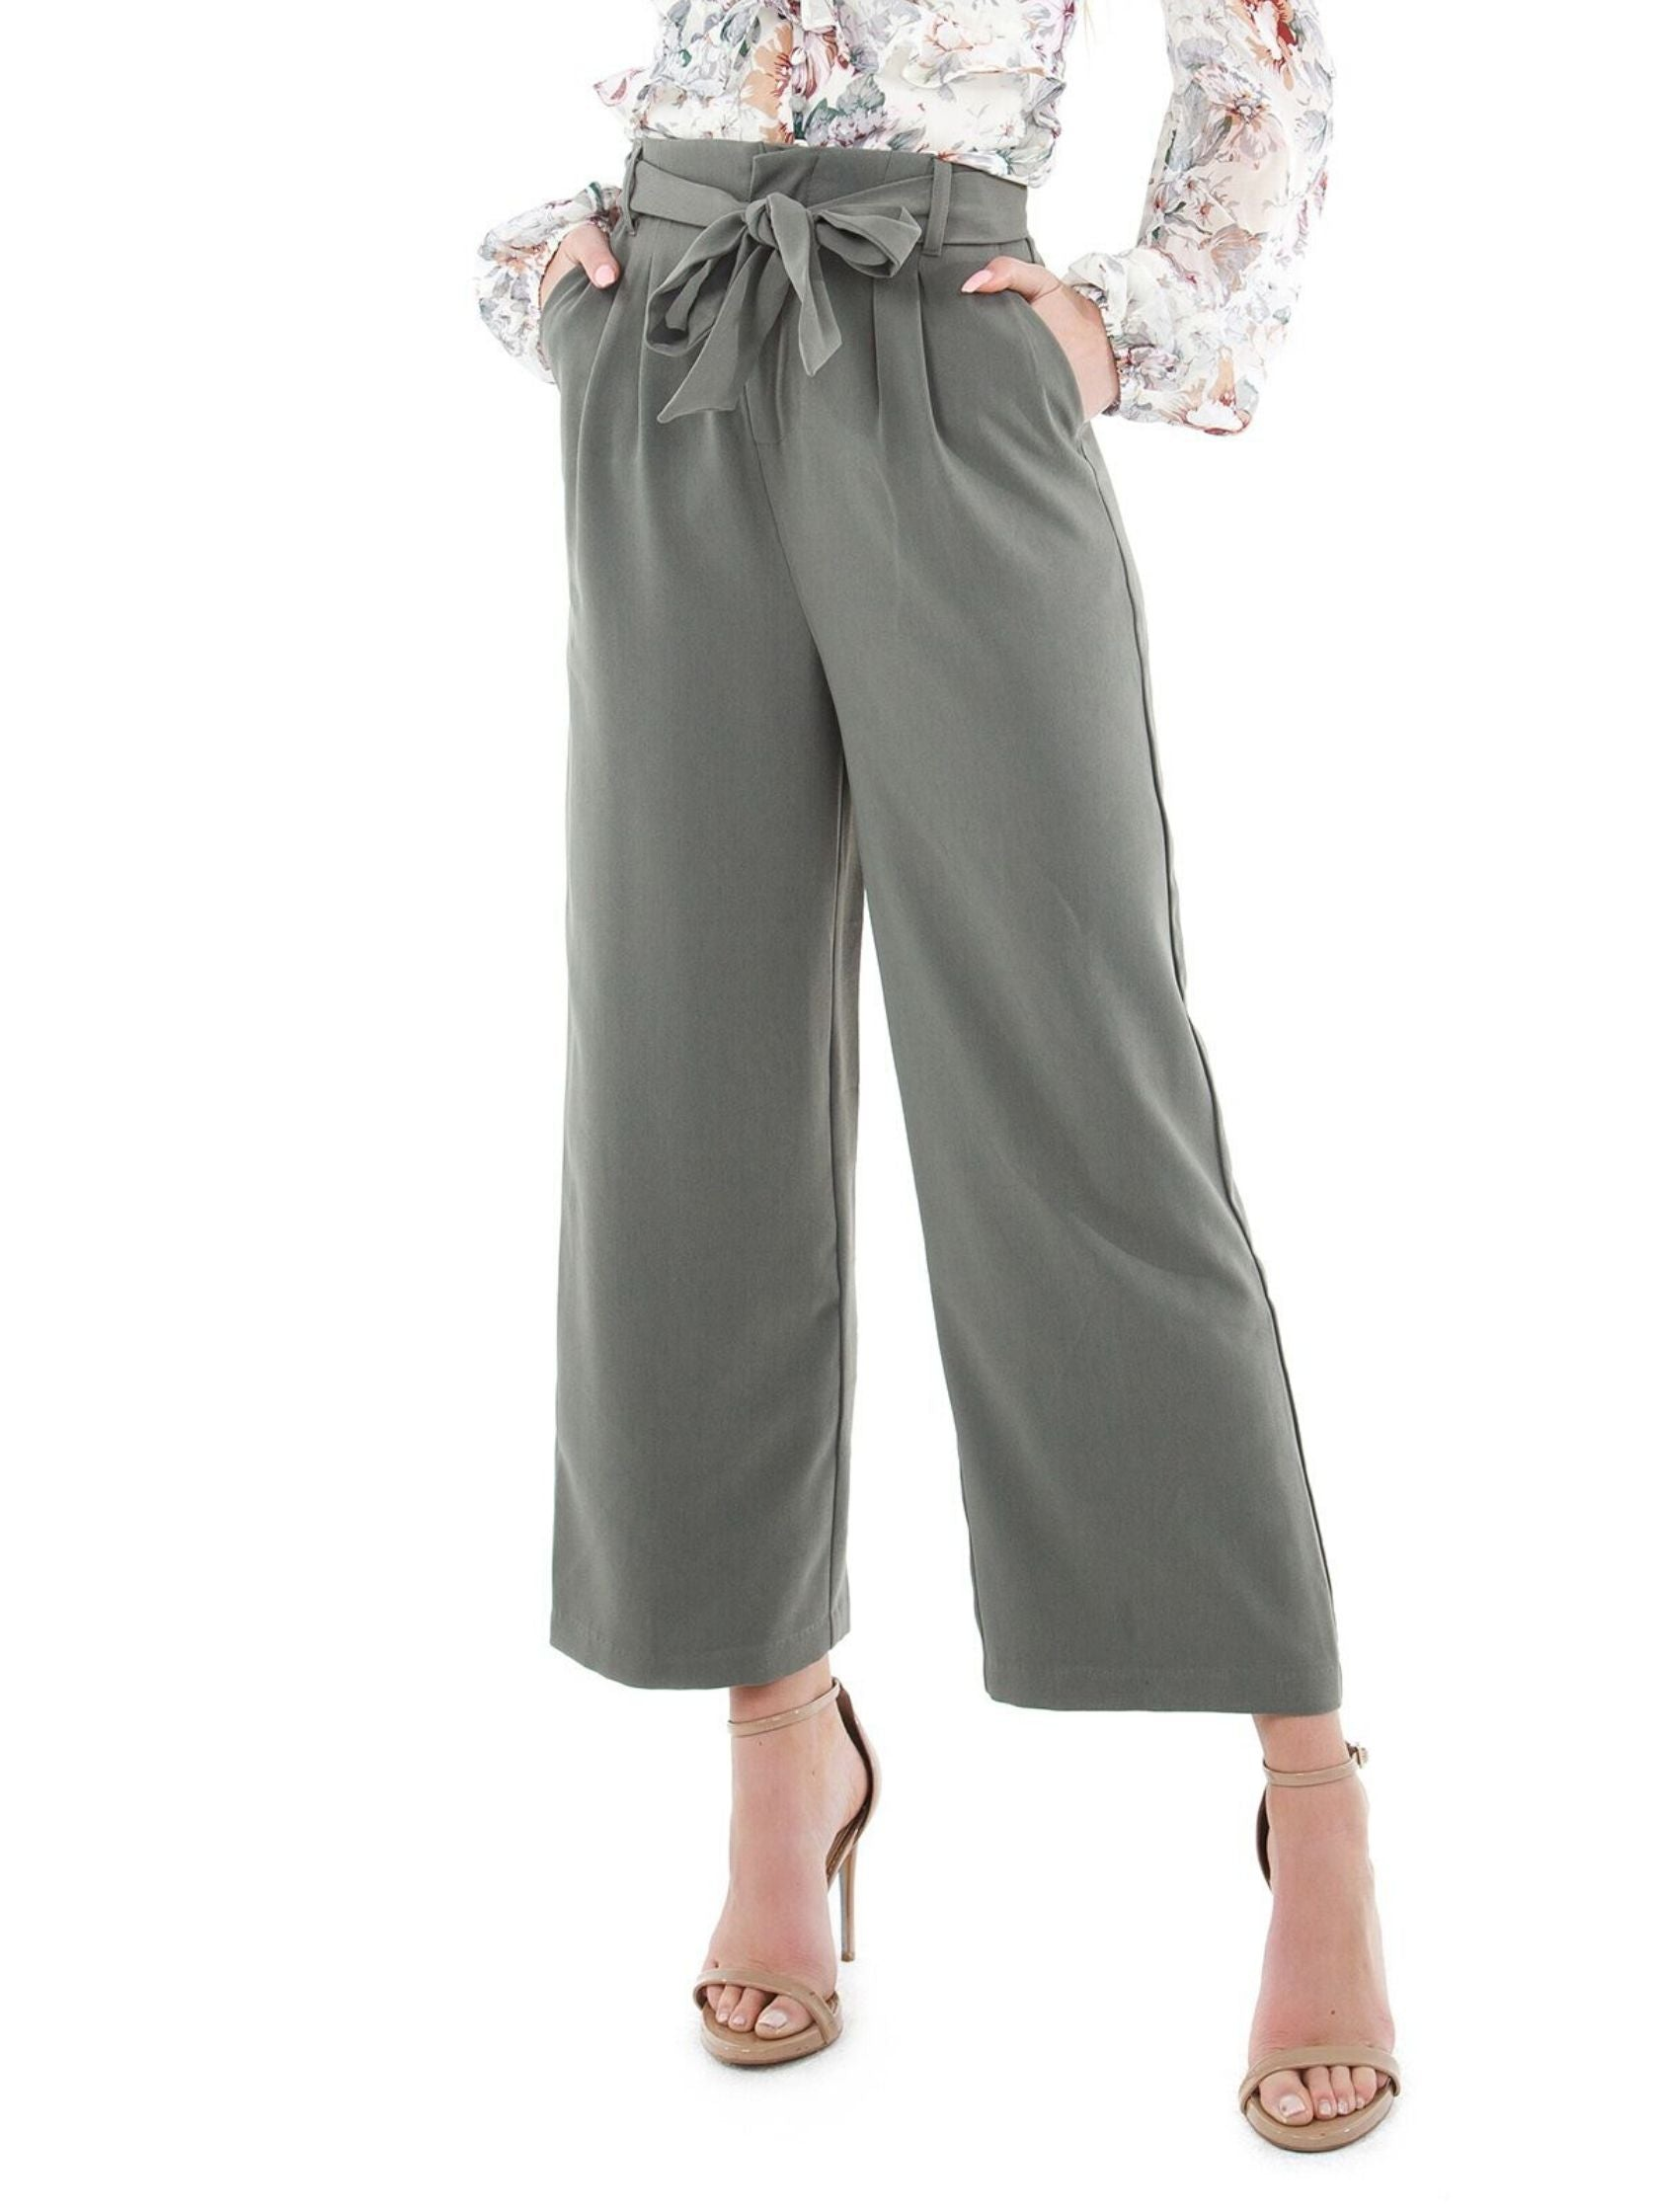 Woman wearing a pants rental from BB Dakota called Go With The Flow Cropped Pant